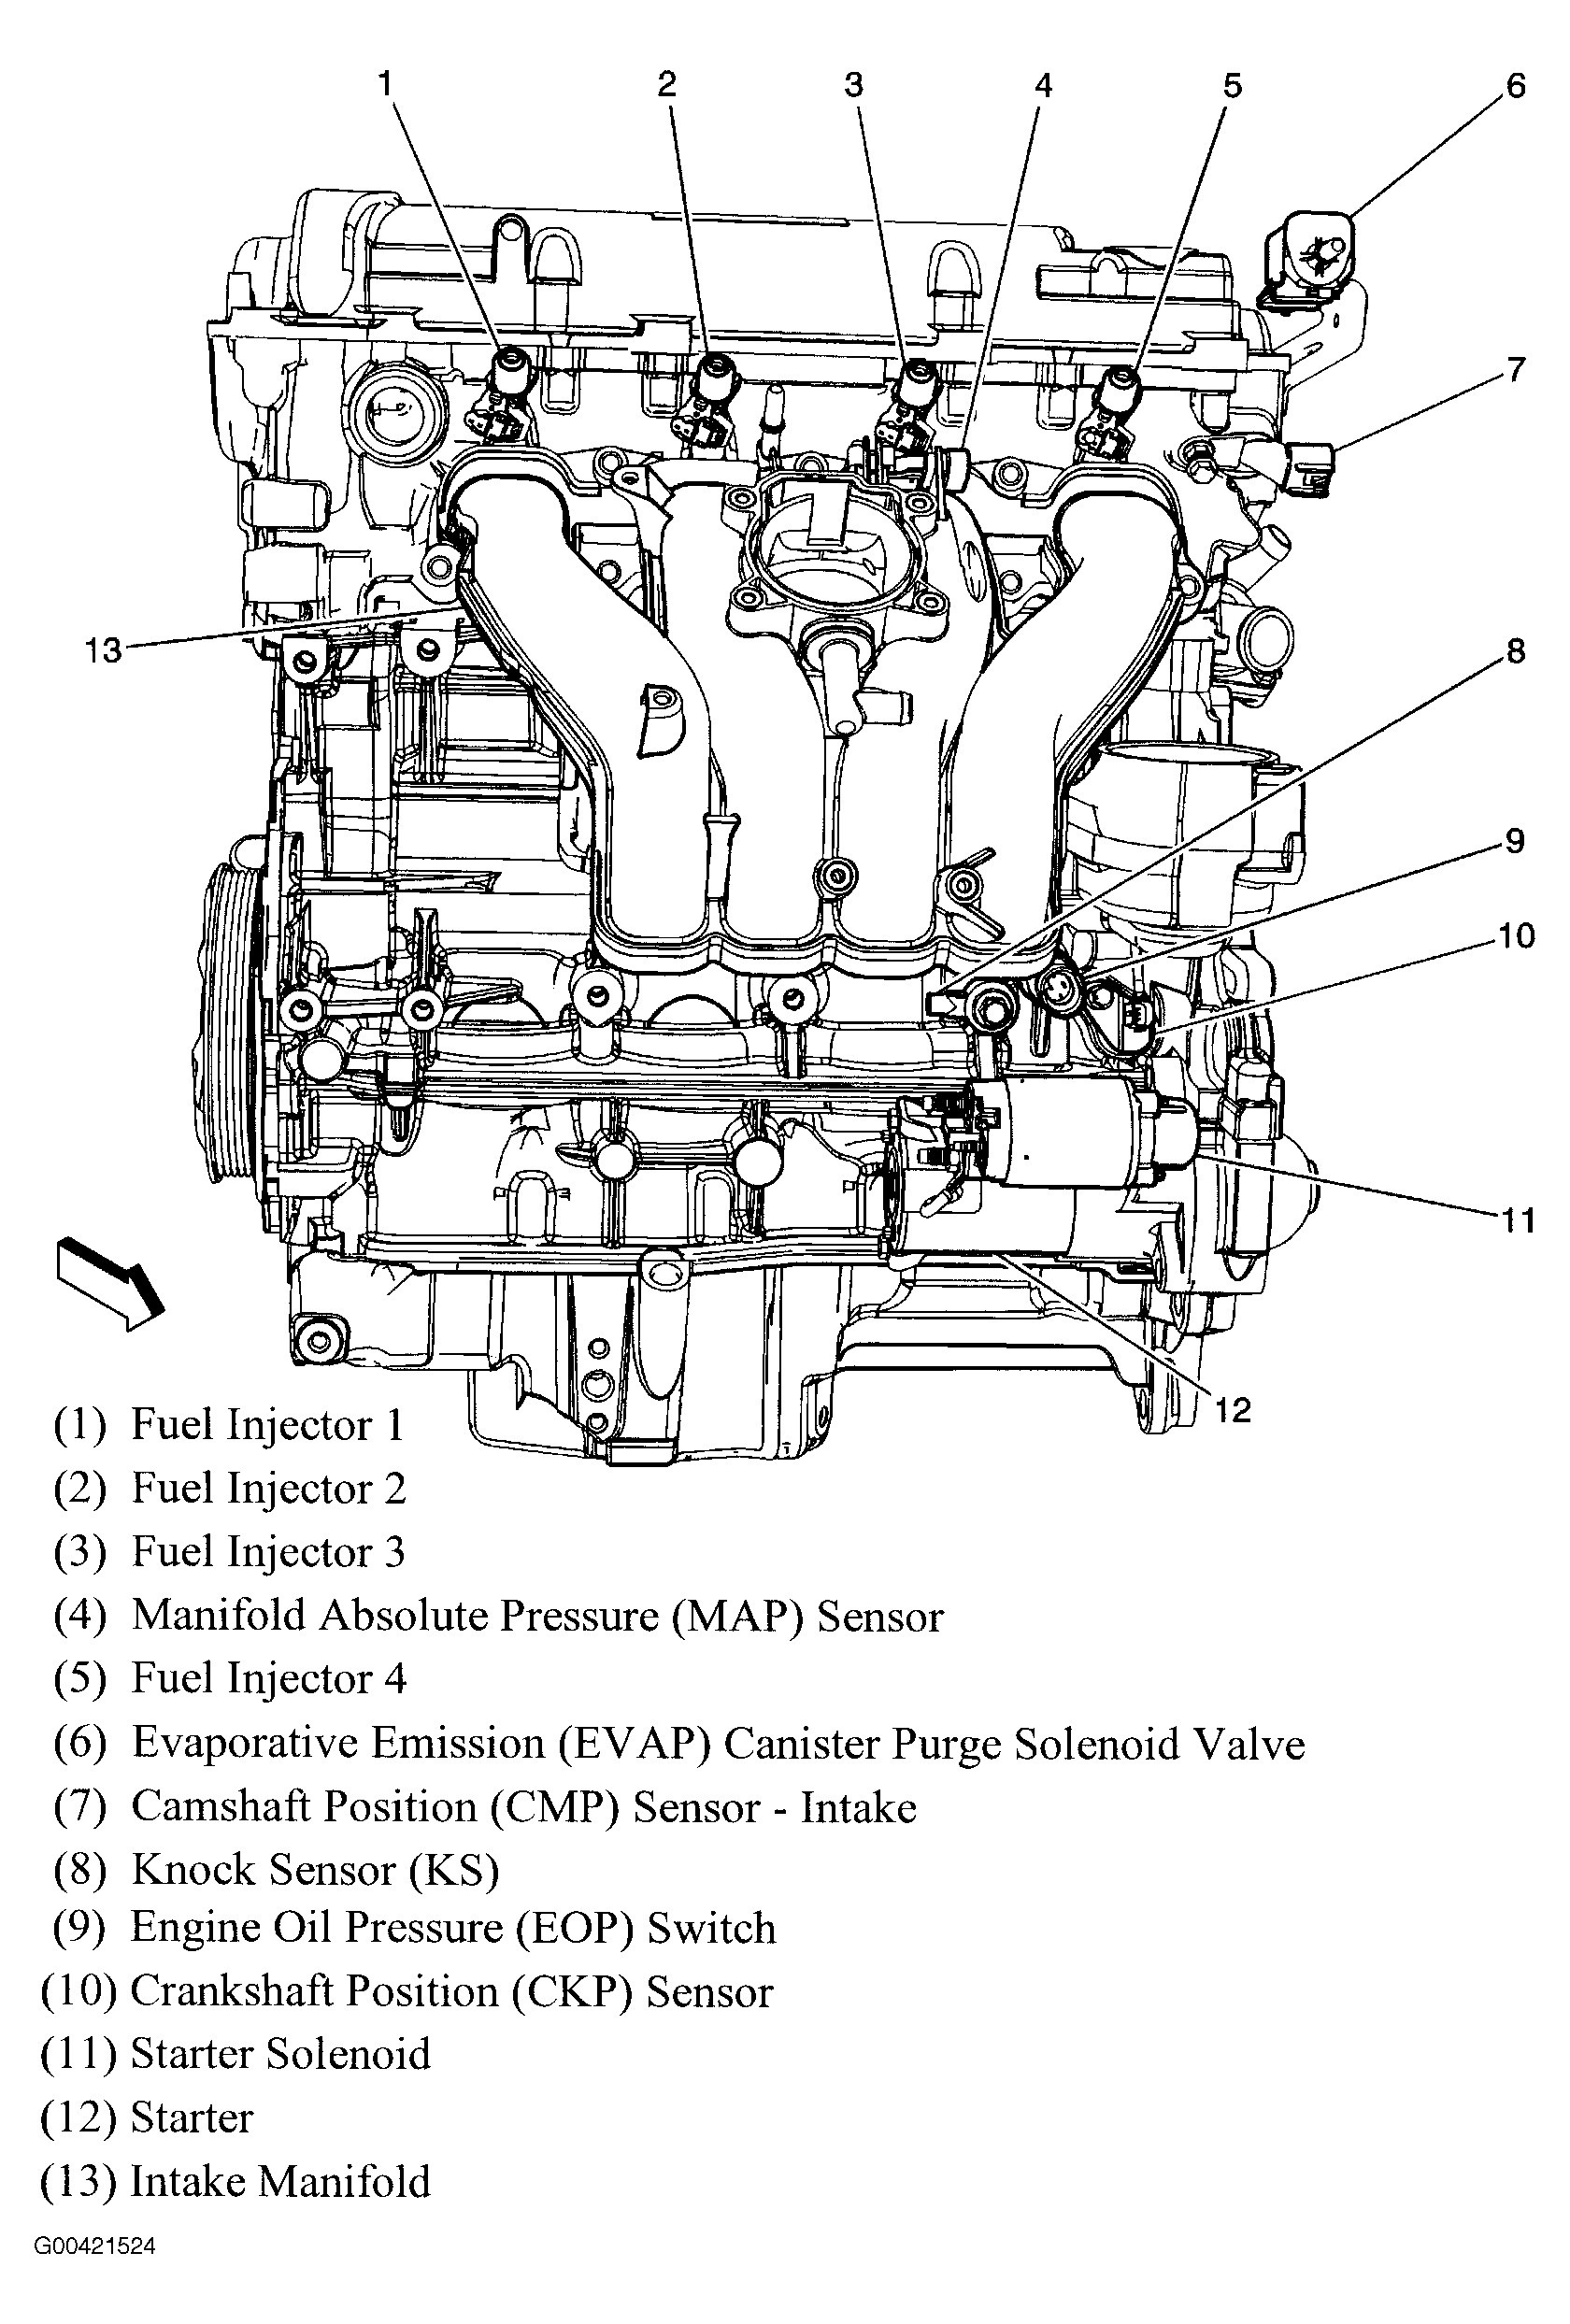 hight resolution of saturn ls1 engine diagram wiring diagram paper 2001 saturn sl2 engine diagram sensor